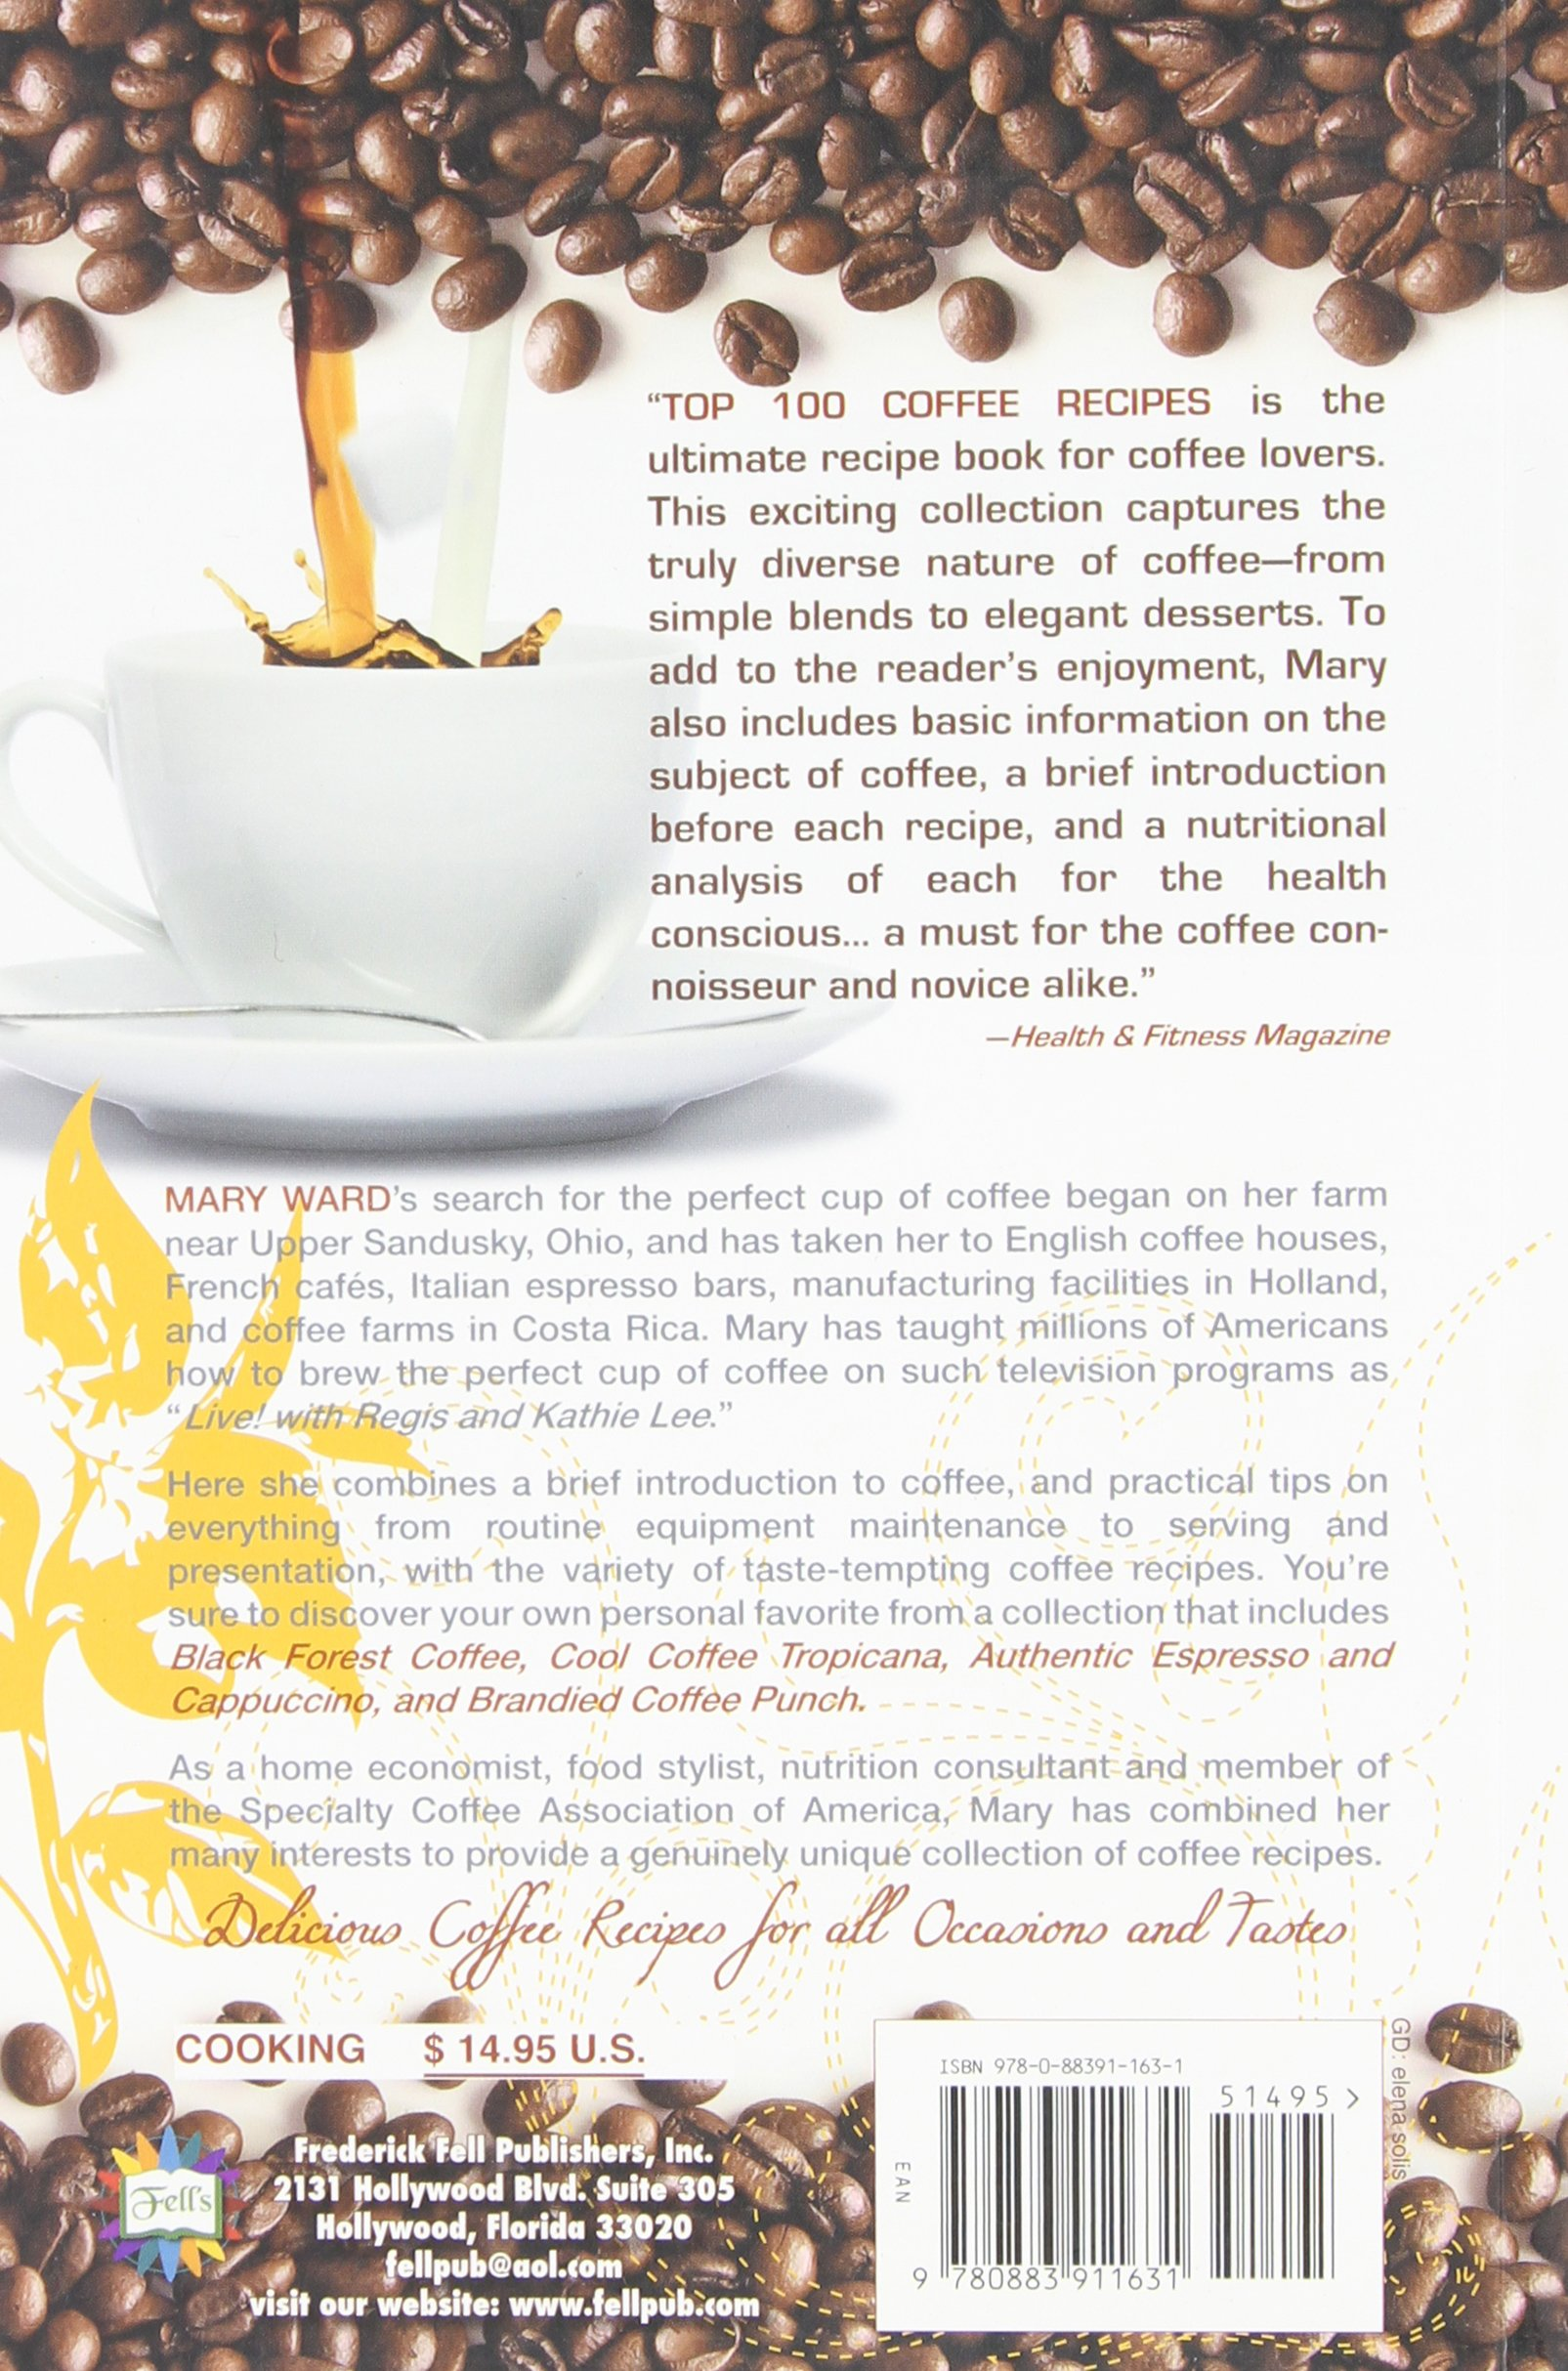 Top 100 Coffee Recipes: A Cookbook for Coffee Lovers: Mary Vard ...